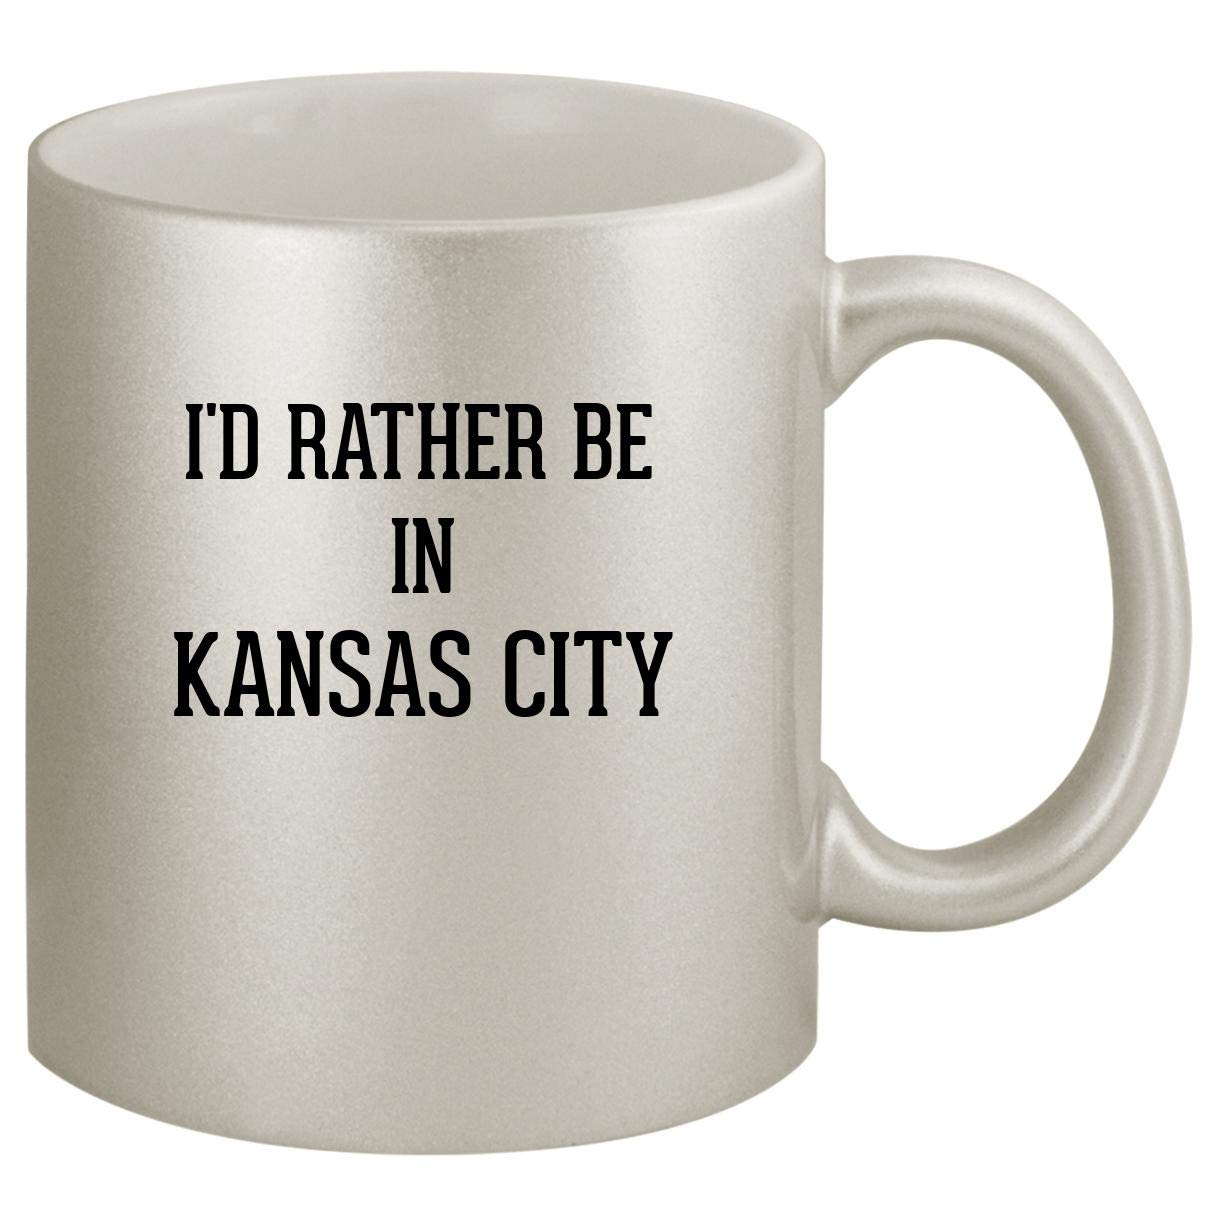 I'd Rather Be In KANSAS CITY - Ceramic 11oz Silver Coffee Mug, Silver